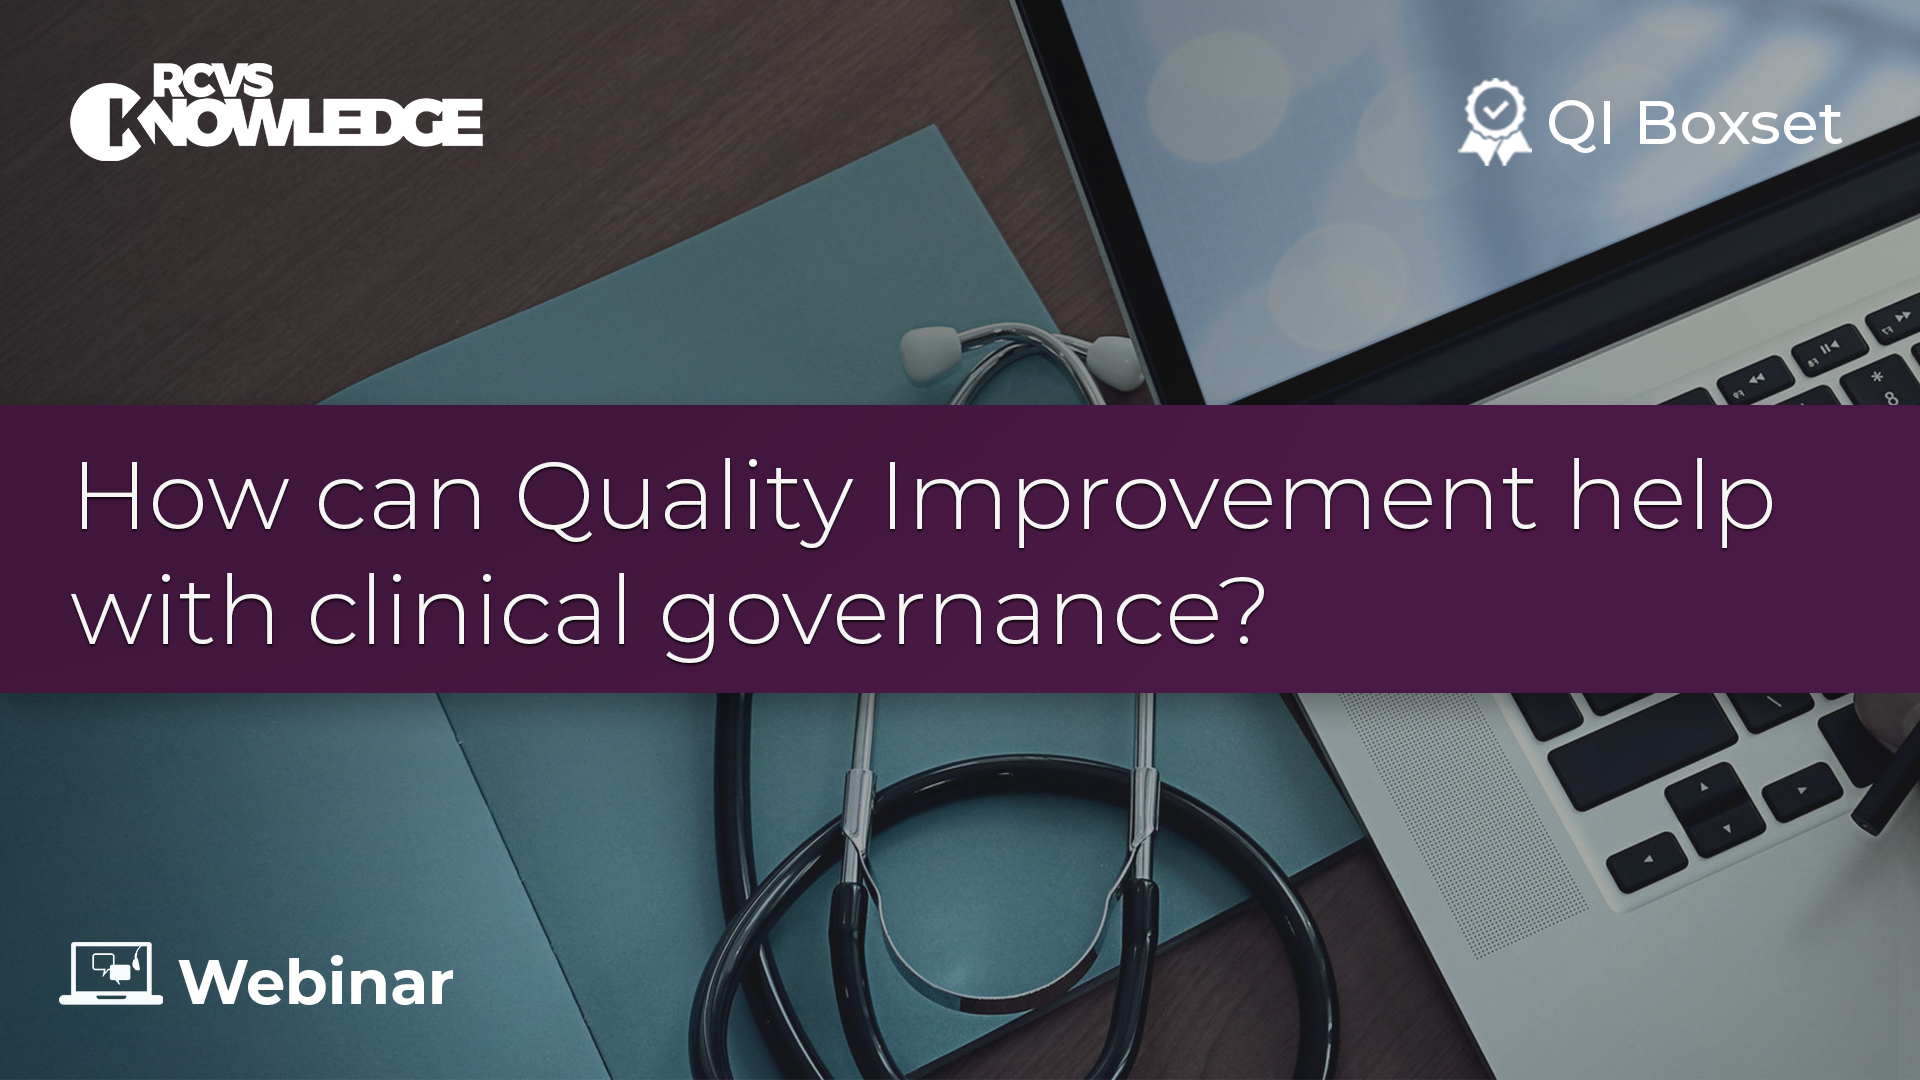 How can Quality Improvement help with clinical governance?